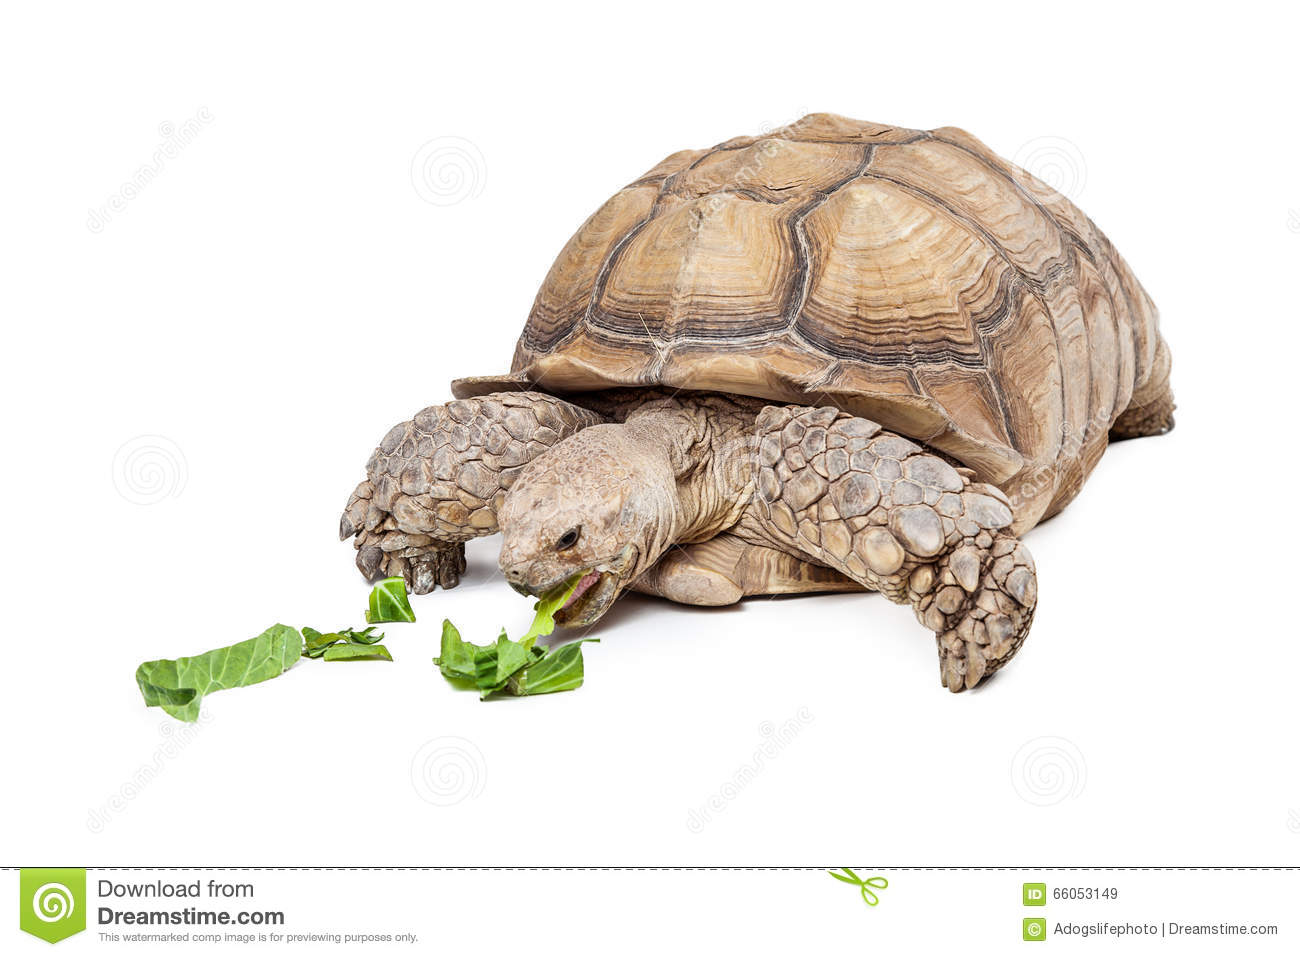 Sulcata Tortoise clipart #3, Download drawings